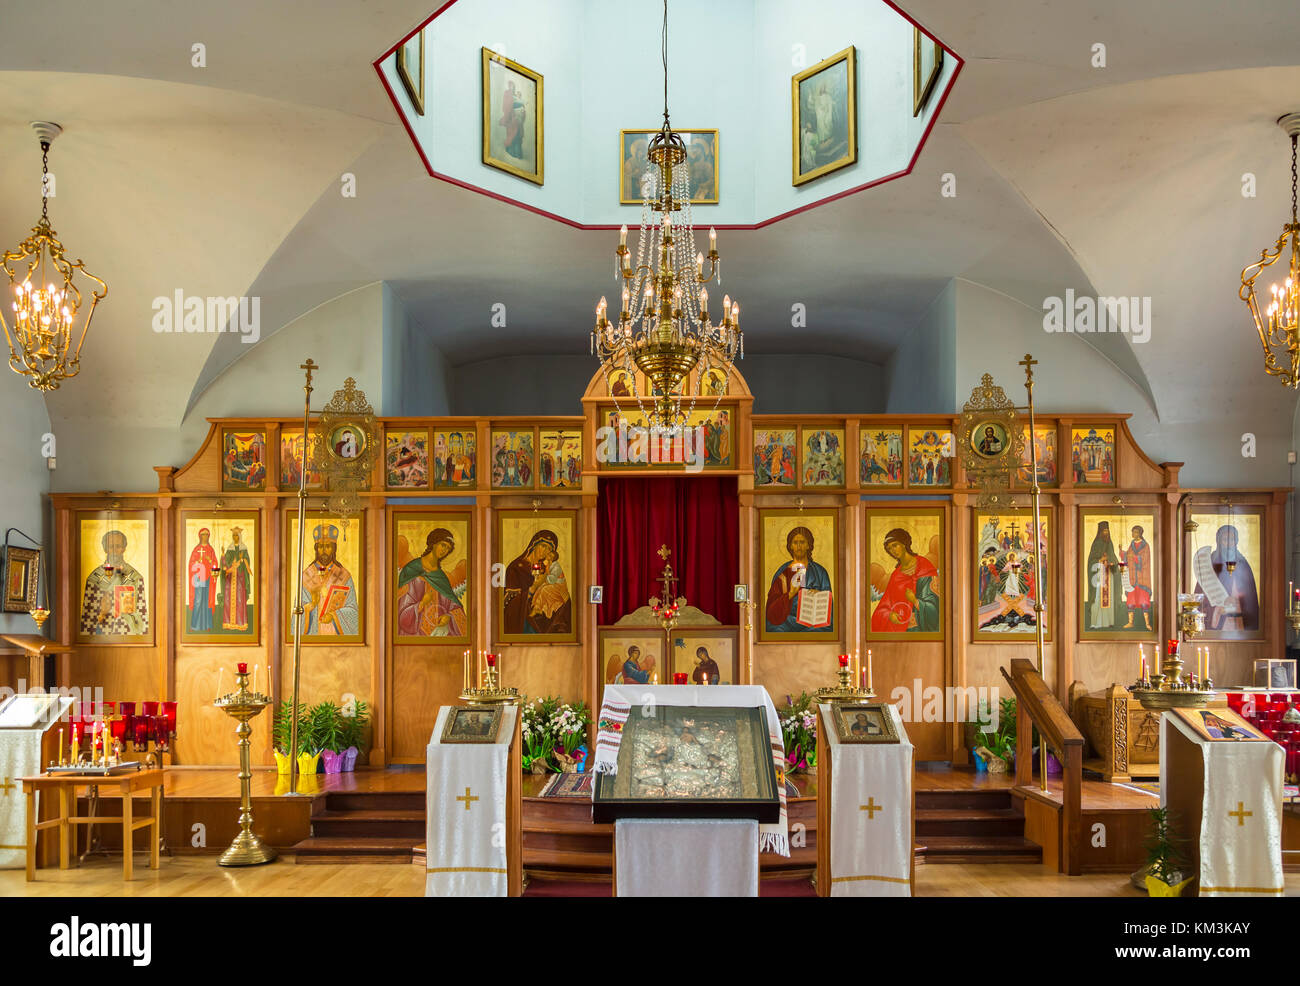 Interior of the Holy Resurrection Russian Orthodox Church in Kodiak     Interior of the Holy Resurrection Russian Orthodox Church in Kodiak   Alaska  USA